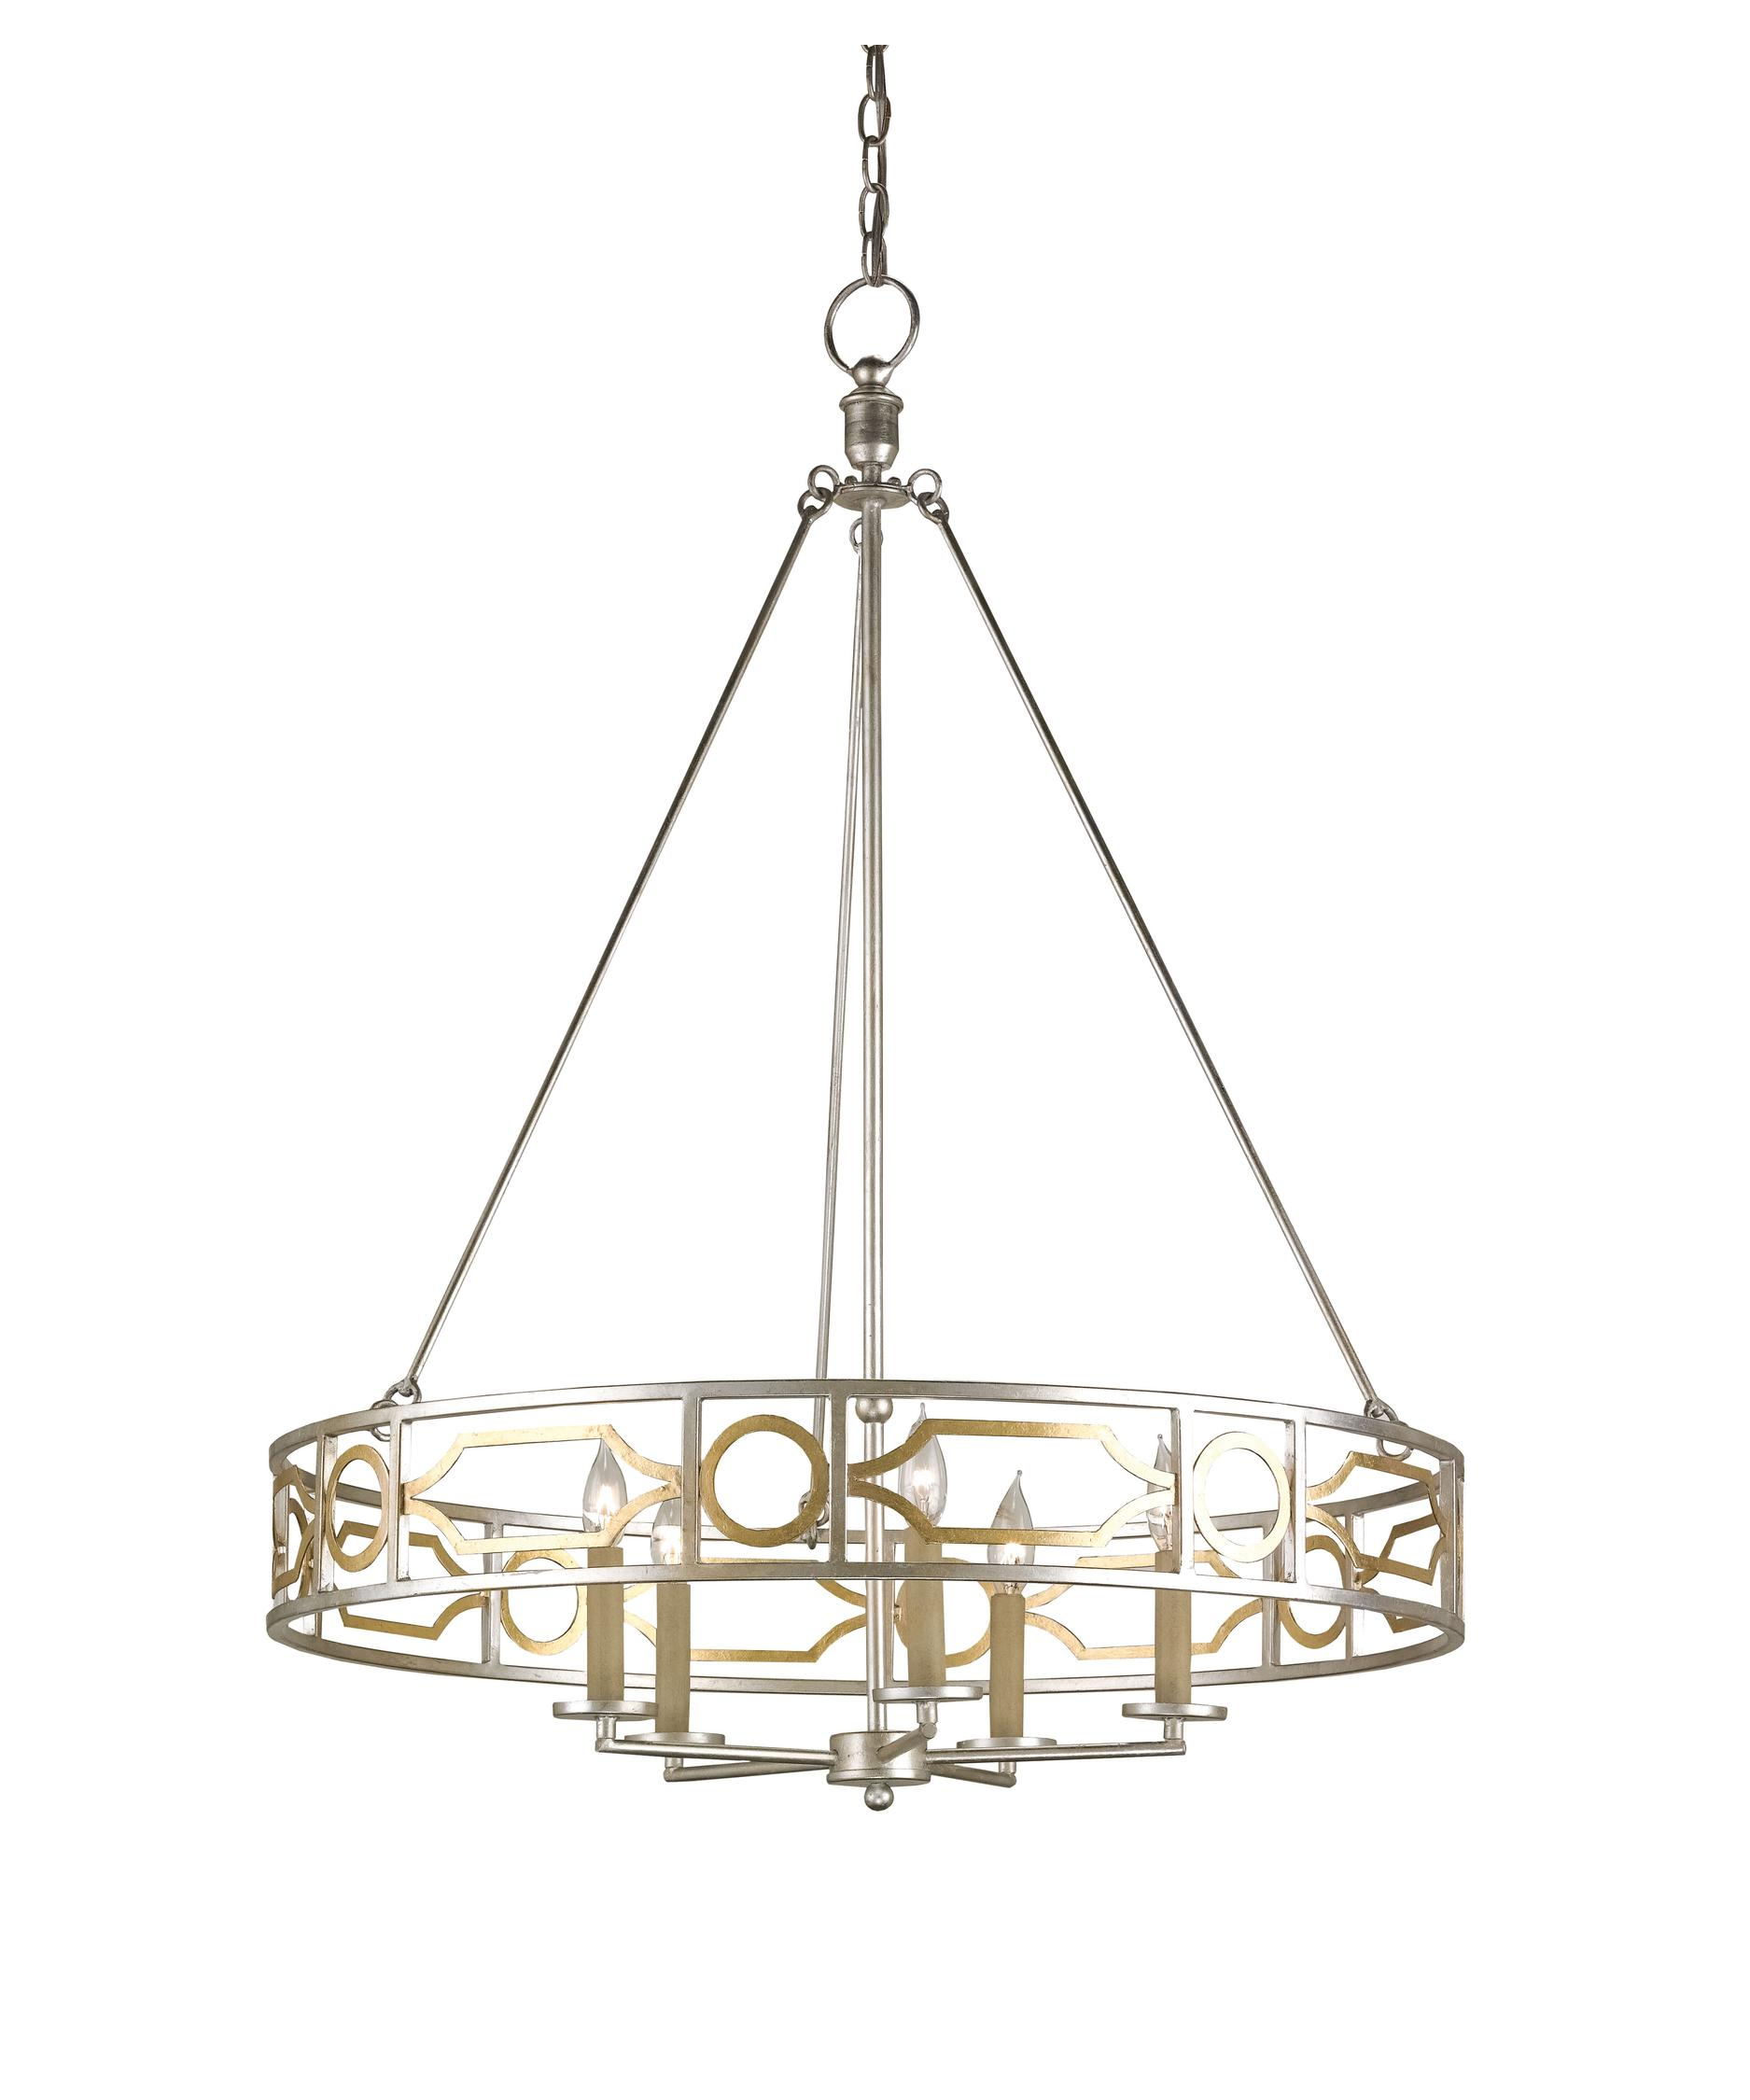 Currey and Company Fairchild by Lillian August Chandelier – Currey and Company Lighting Chandeliers